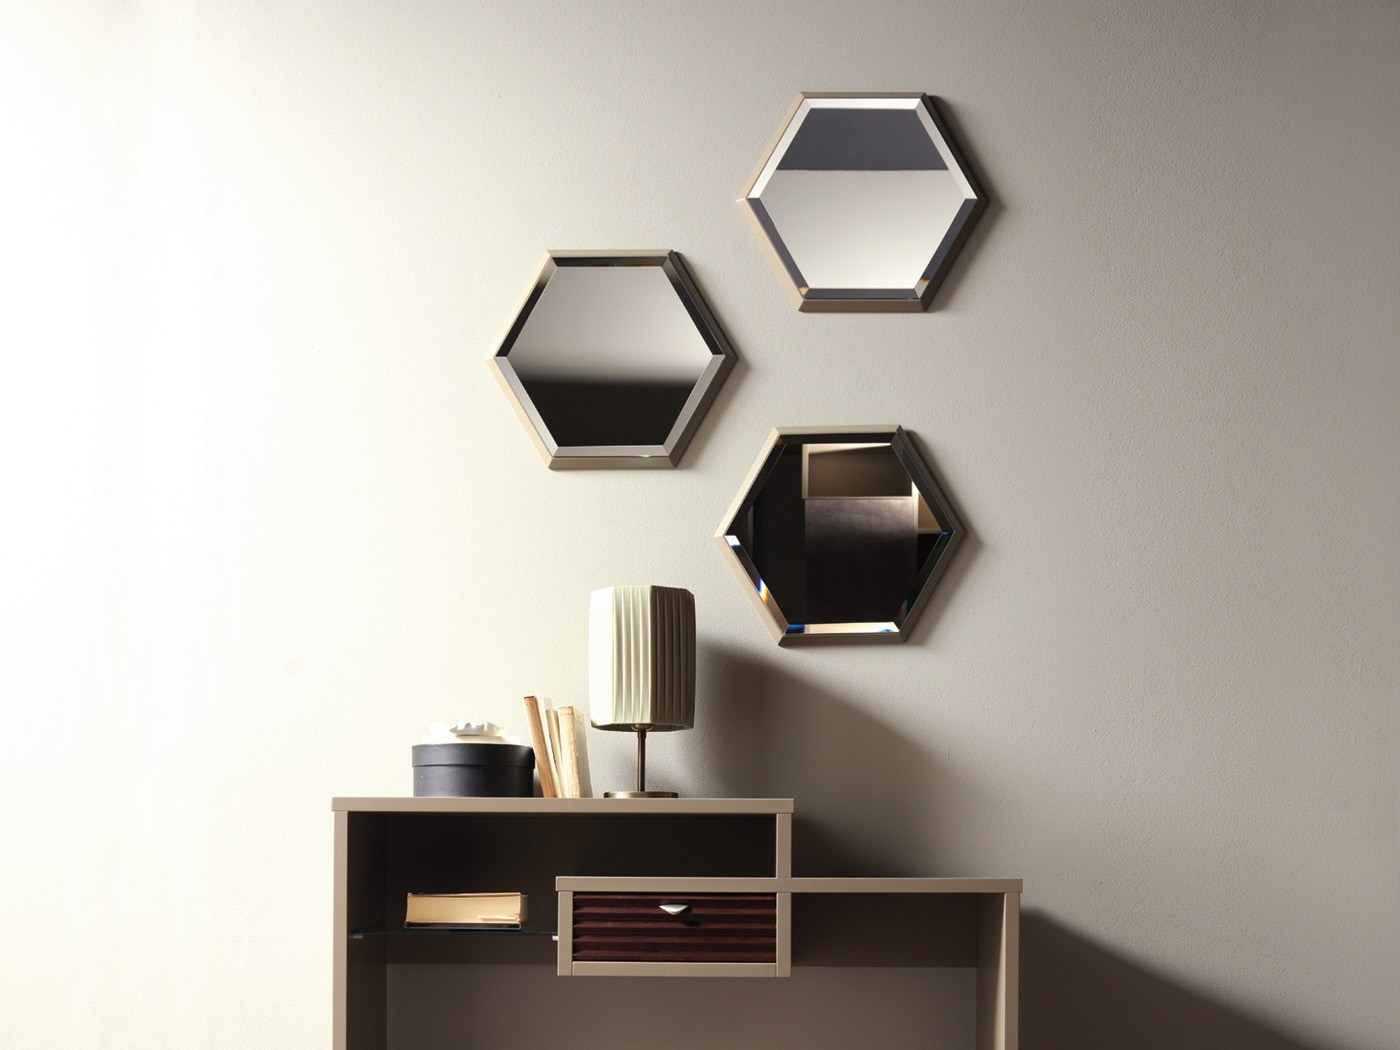 prisma miroir mural by caroti design ni ko design. Black Bedroom Furniture Sets. Home Design Ideas